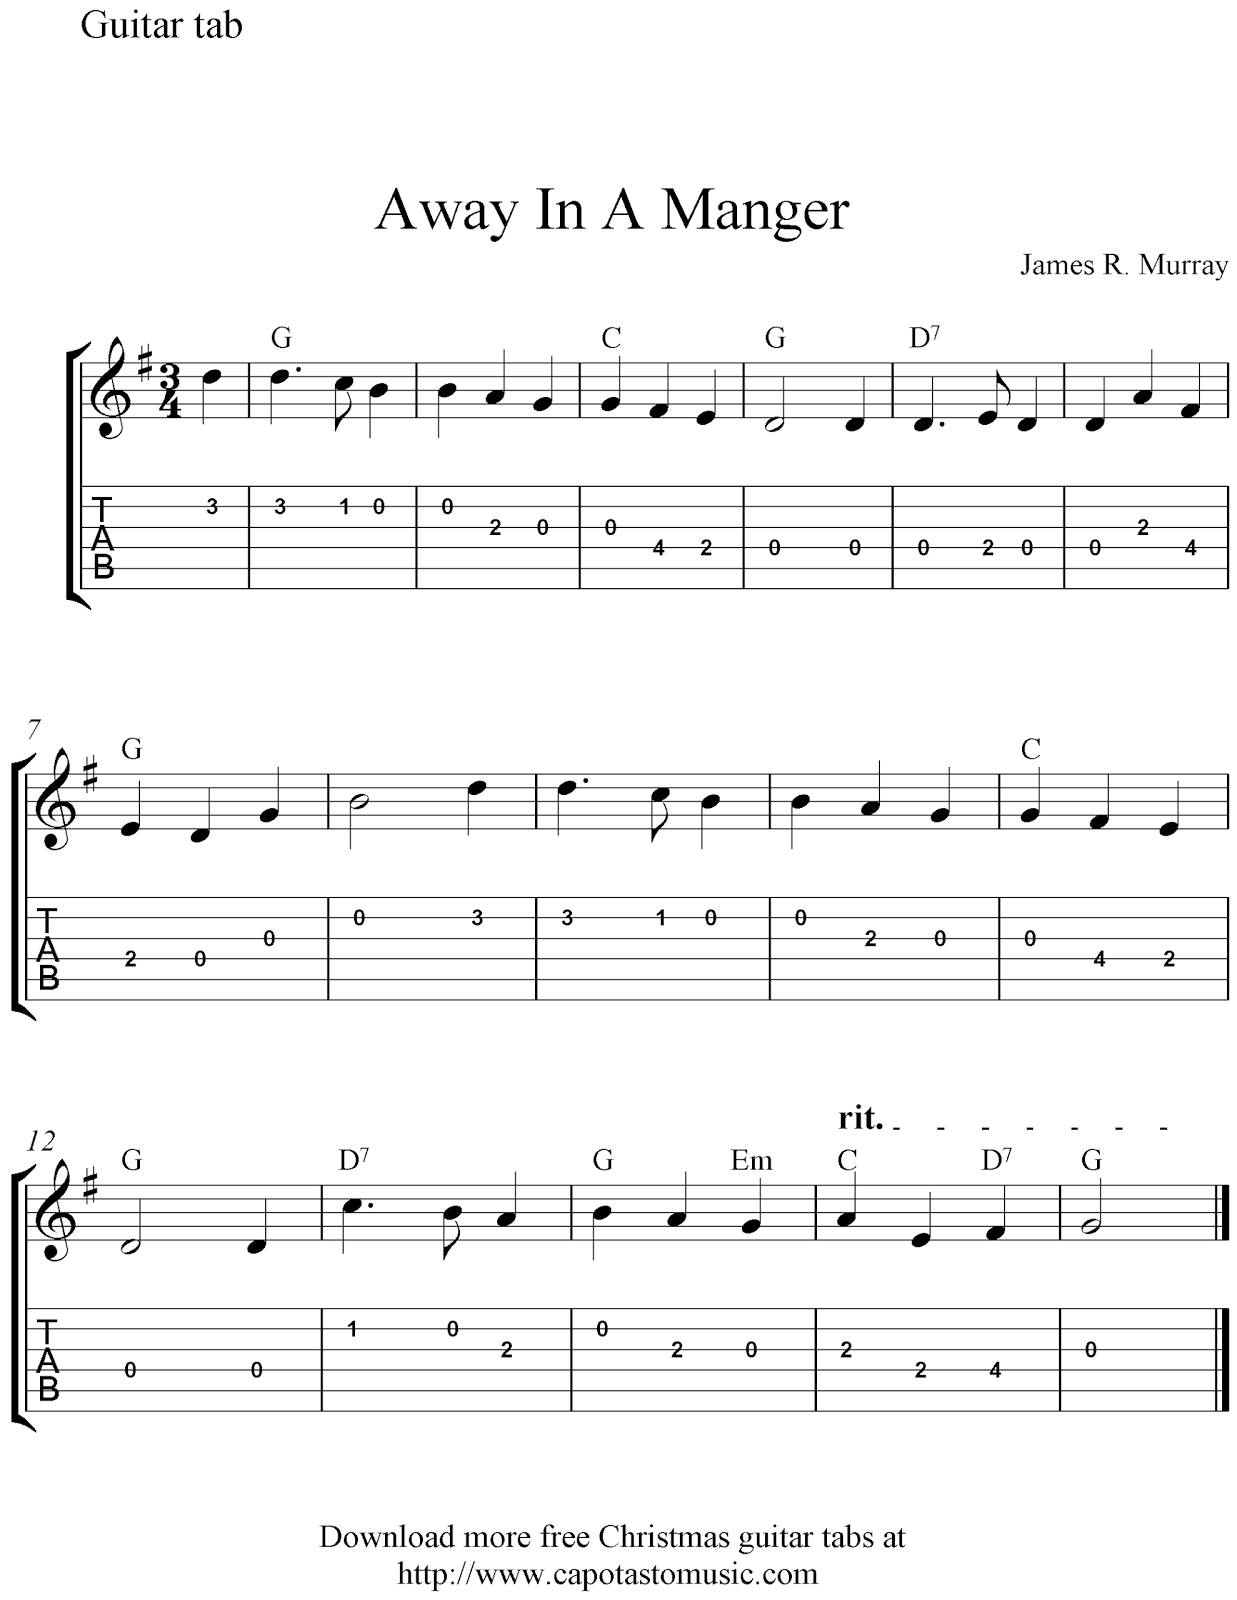 On This Site You Can Download Free Printable Sheet Music Scores And - Free Printable Guitar Music